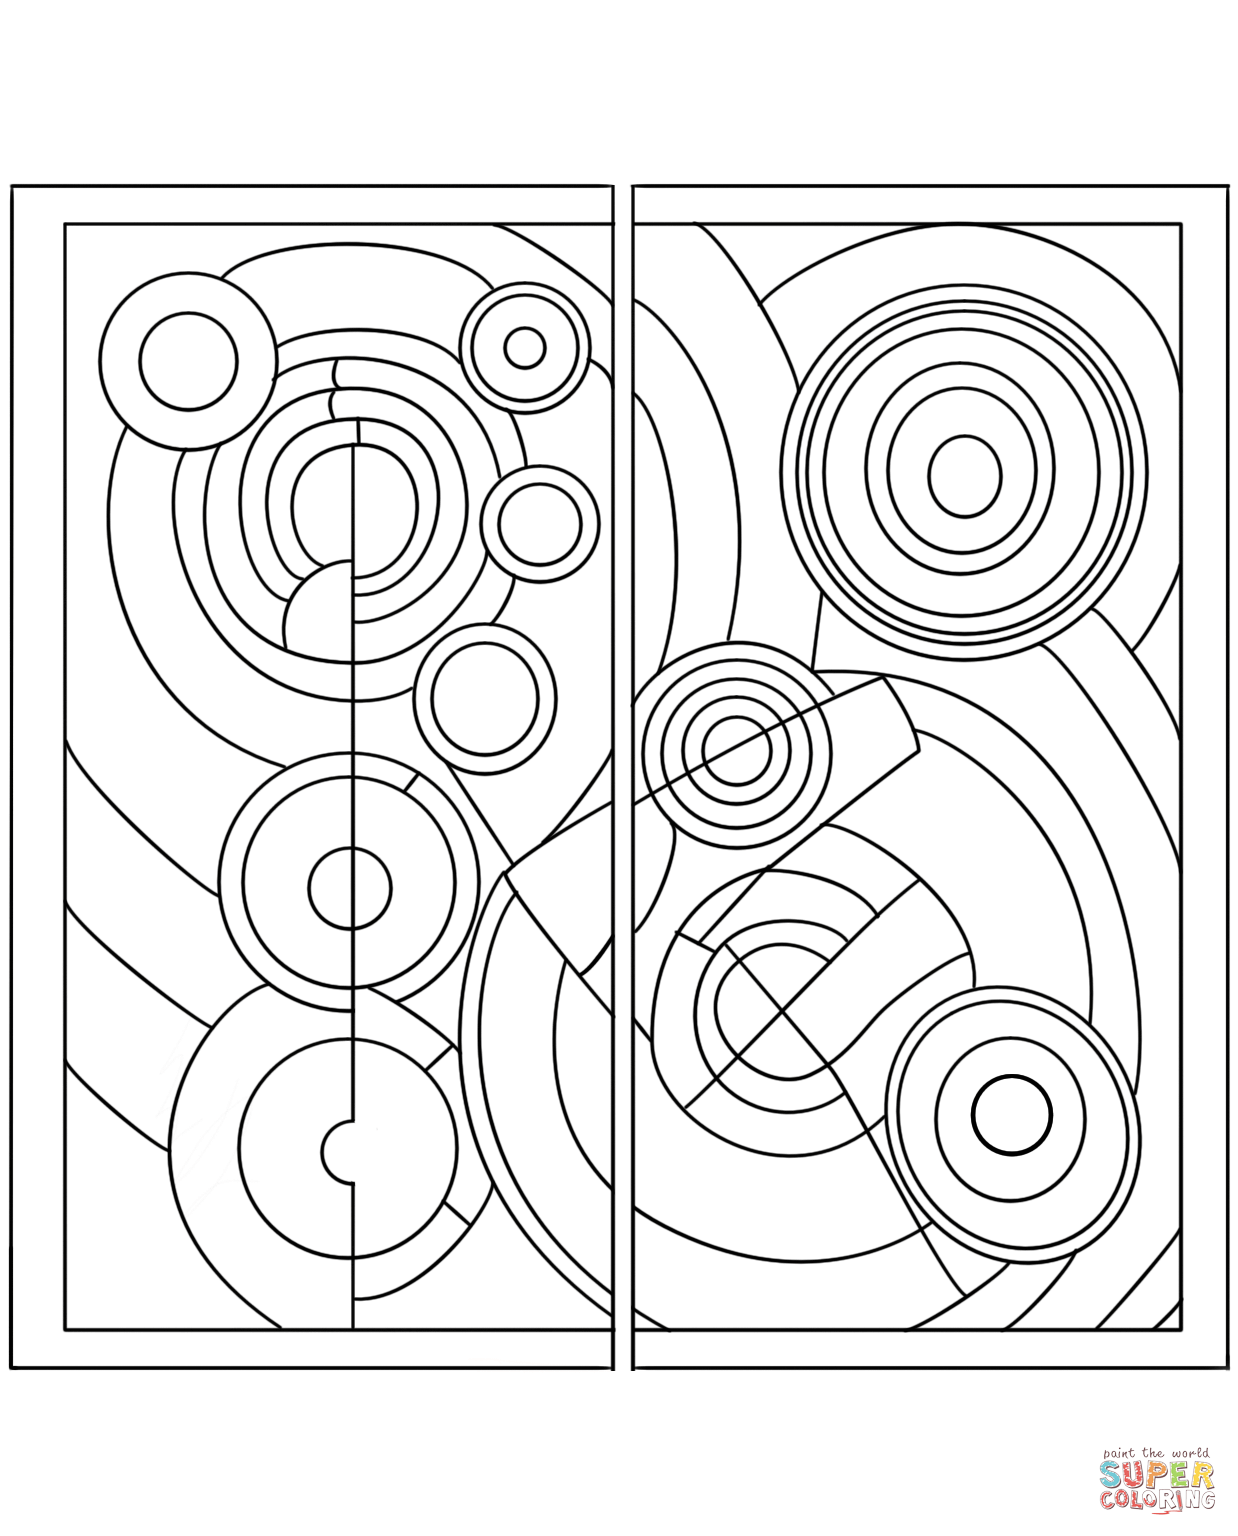 Rhythm By Robert Delaunay Coloring Page